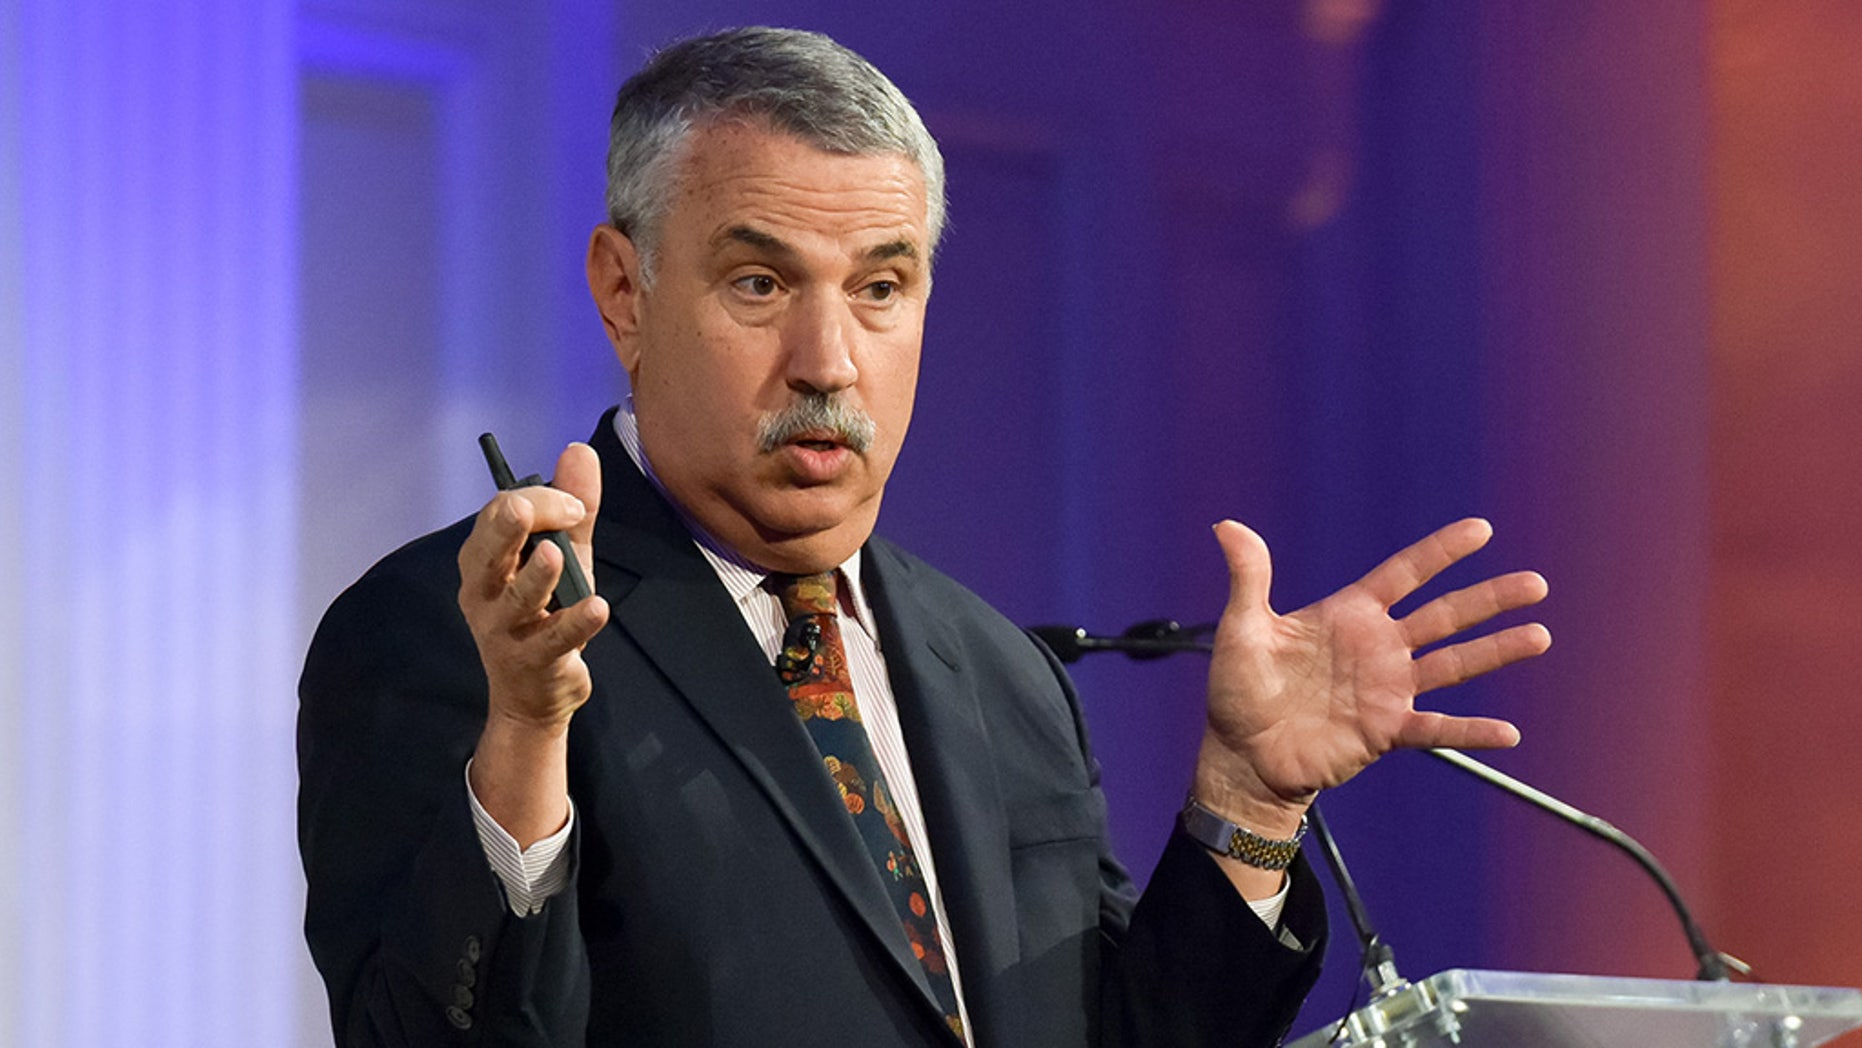 President Trump has an unlikely new ally -- one of the New York Times' most liberal and well-known voices, Thomas Friedman. (Photo by Sean Zanni/Patrick McMullan via Getty Images)